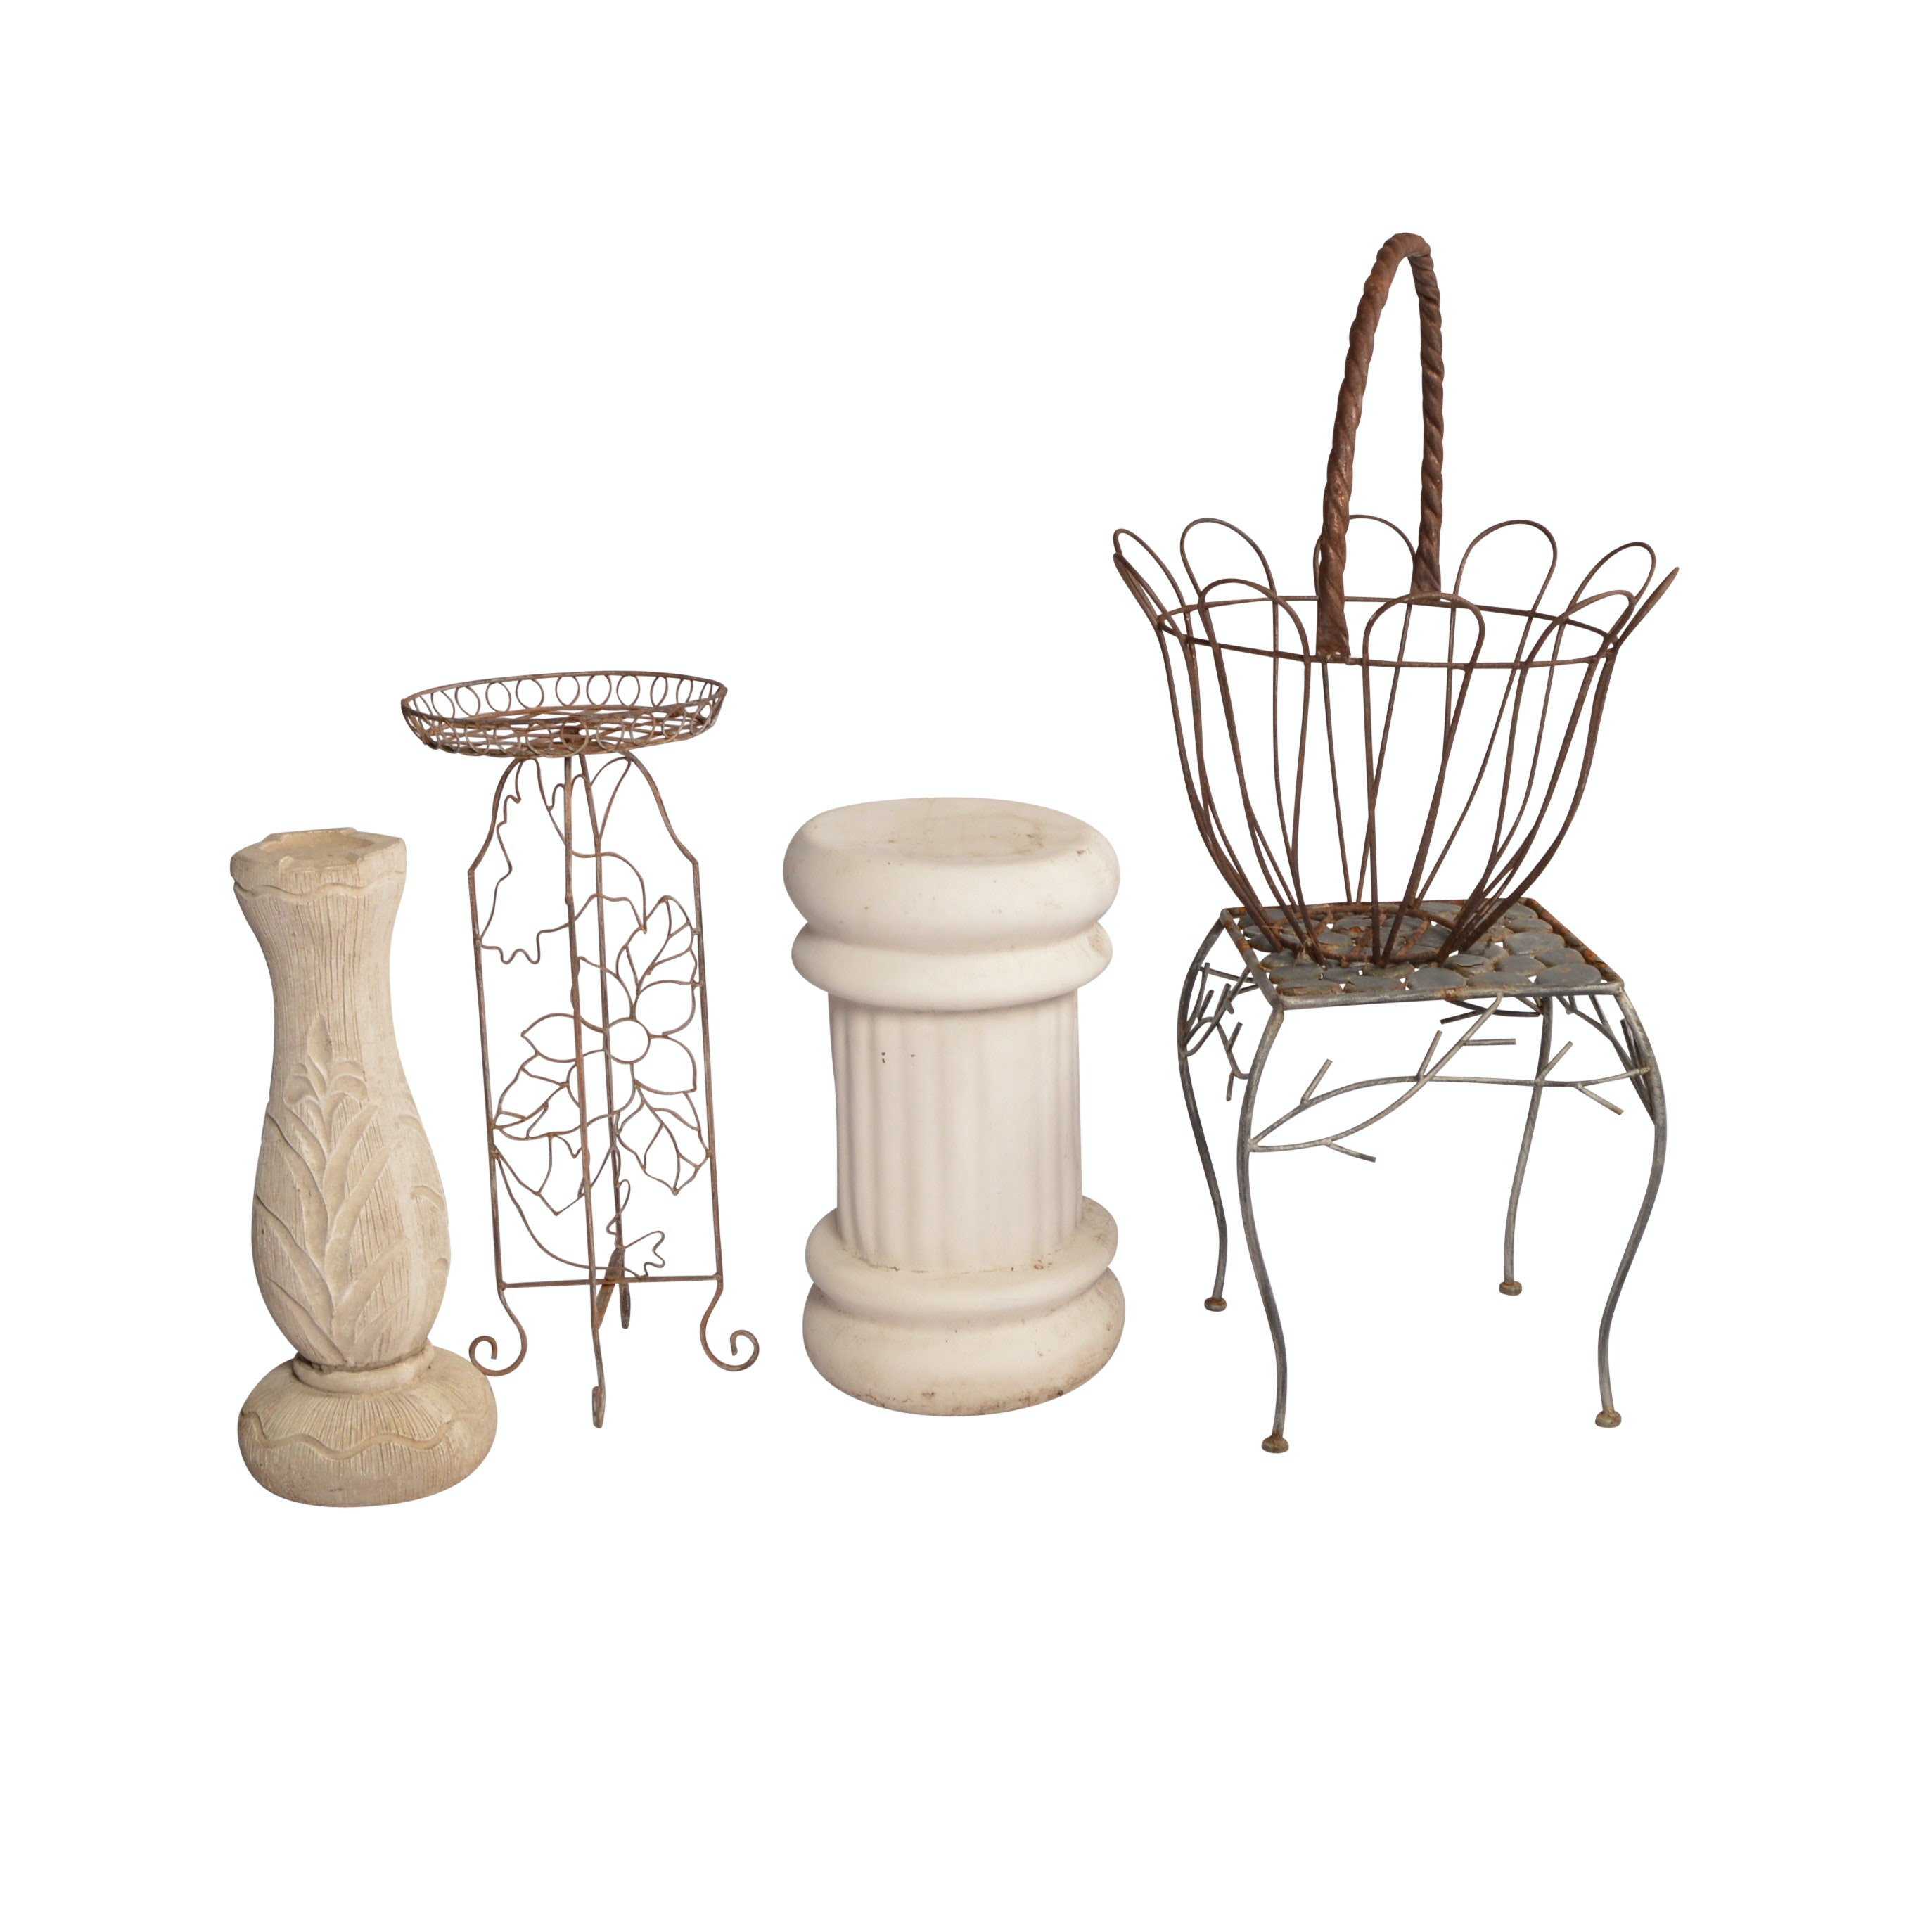 Collection of Outdoor Decor Including Baskets, Tables, Stands and More